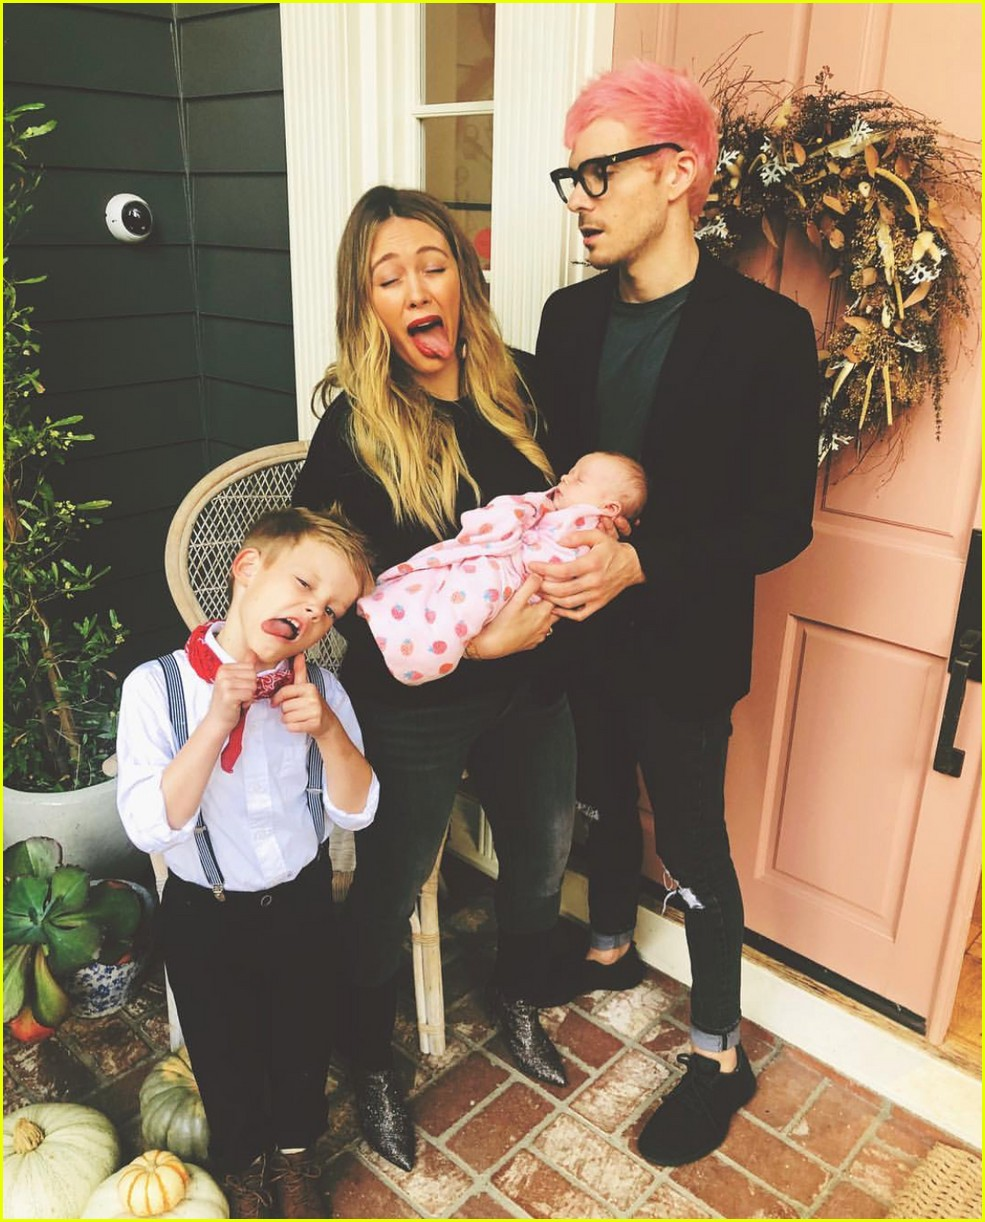 Hilary Duff Reveals Baby Banks Has Colic Reaches Out For